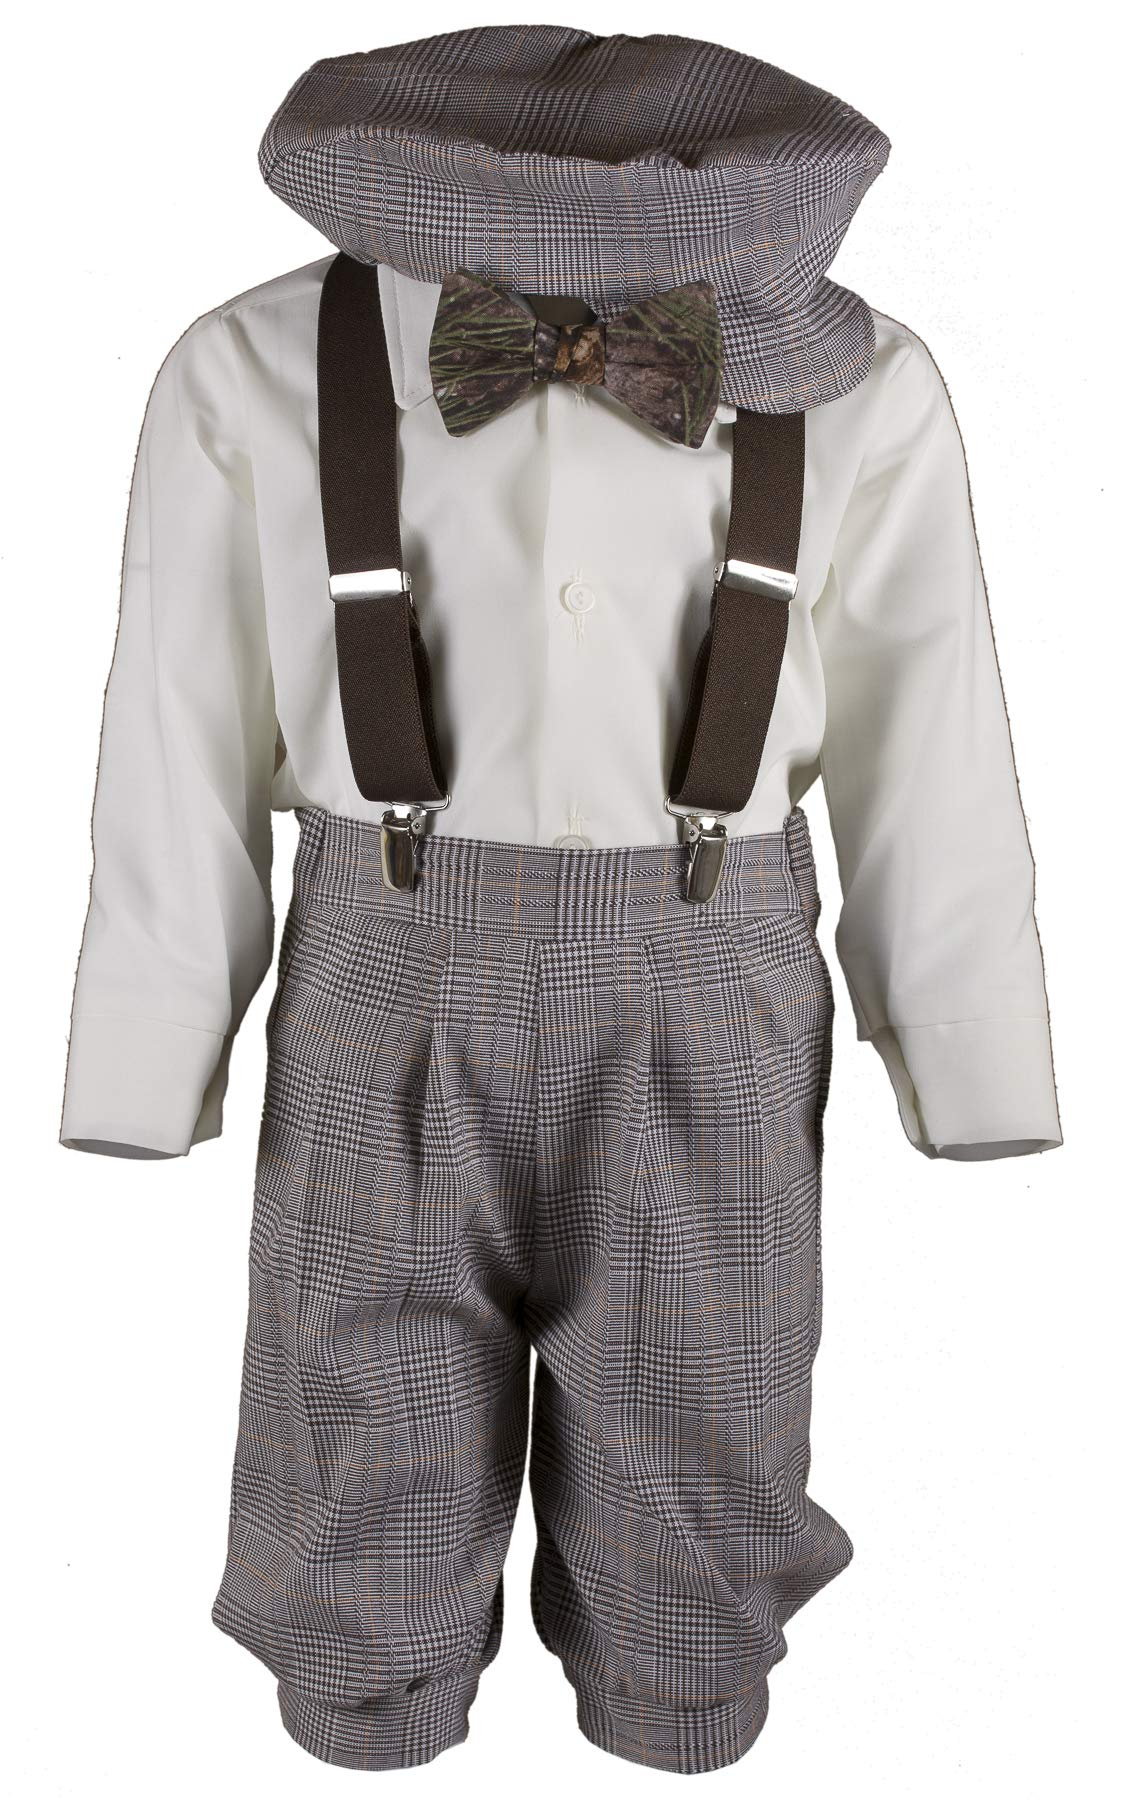 Boys Tan Plaid Knickers Pageboy Cap with Camouflage Bow Tie & Brown Suspenders (3T)